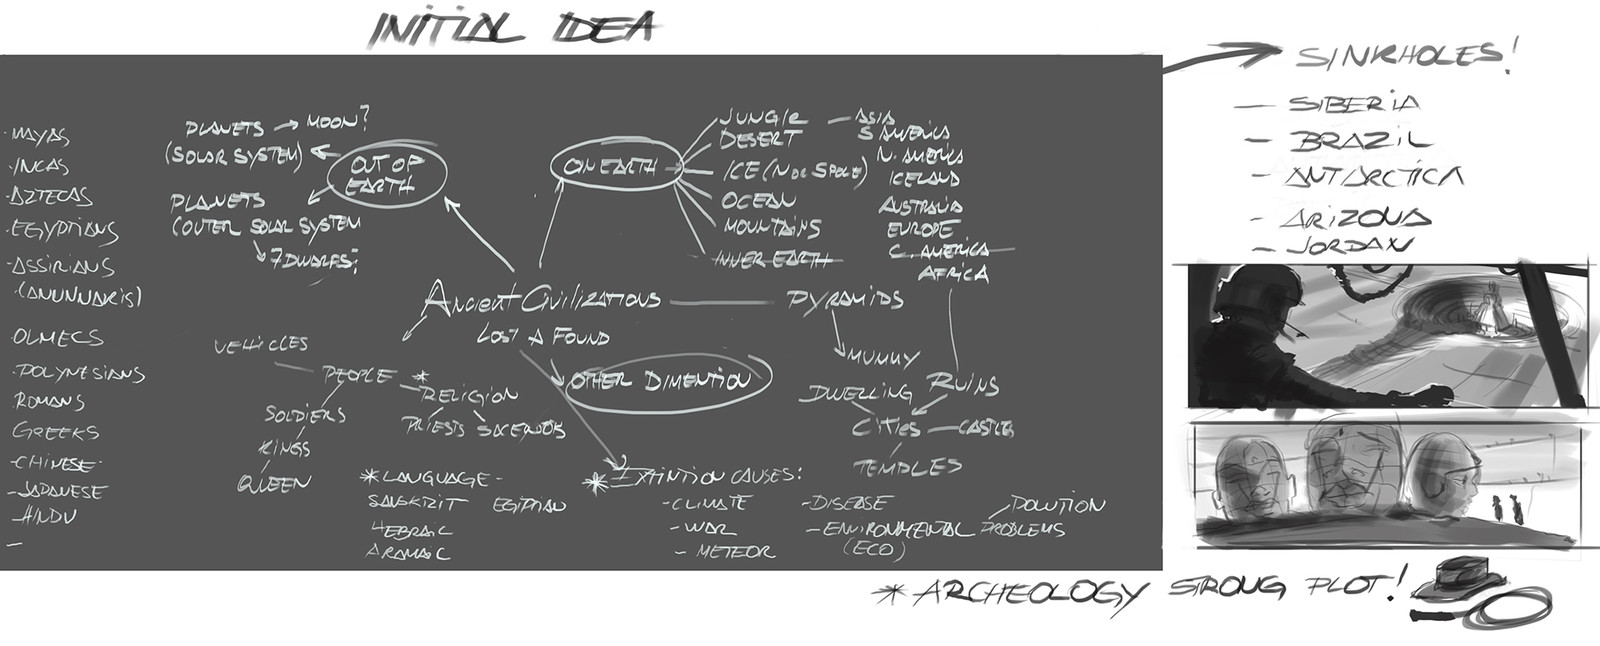 Ideation Chart